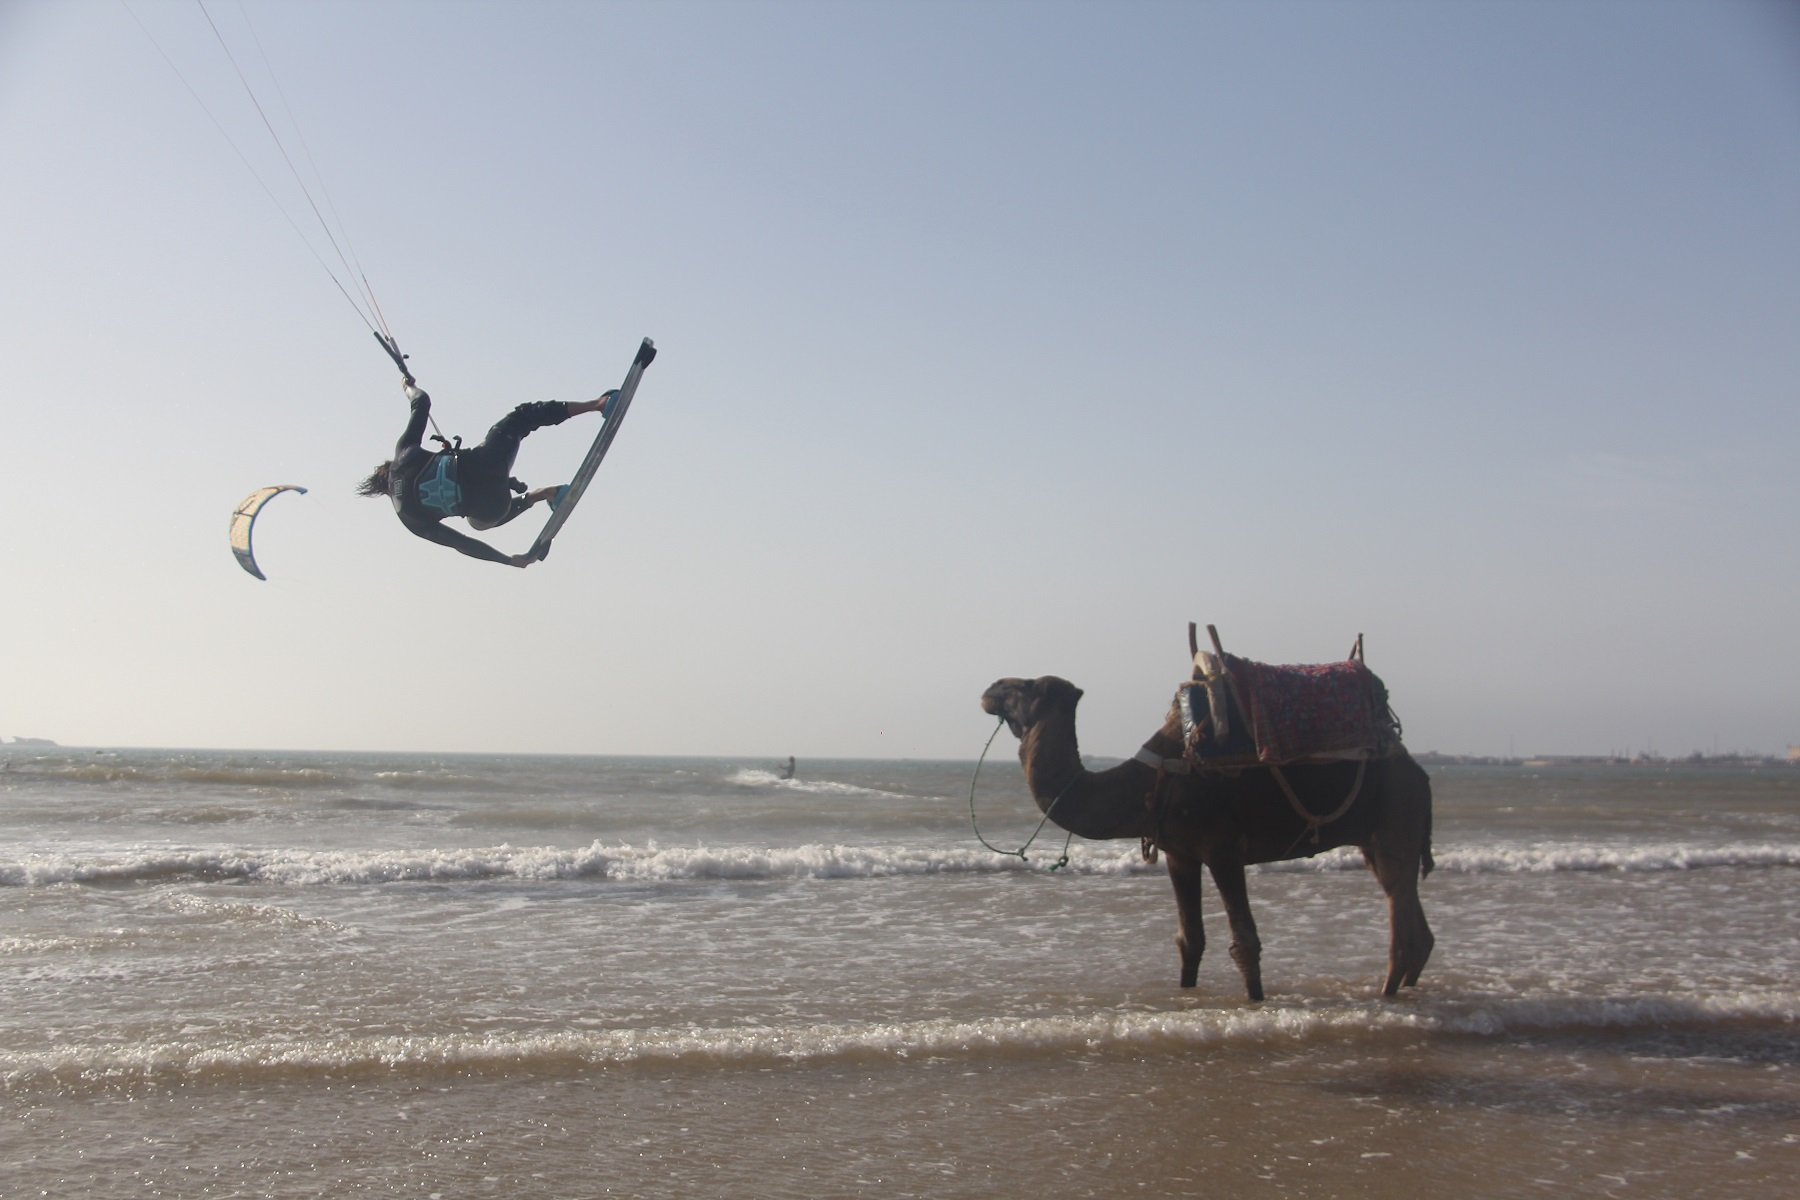 Winter in Morocco: It's time you tried a crash course in kitesurfing on the windy beaches of Essouaria